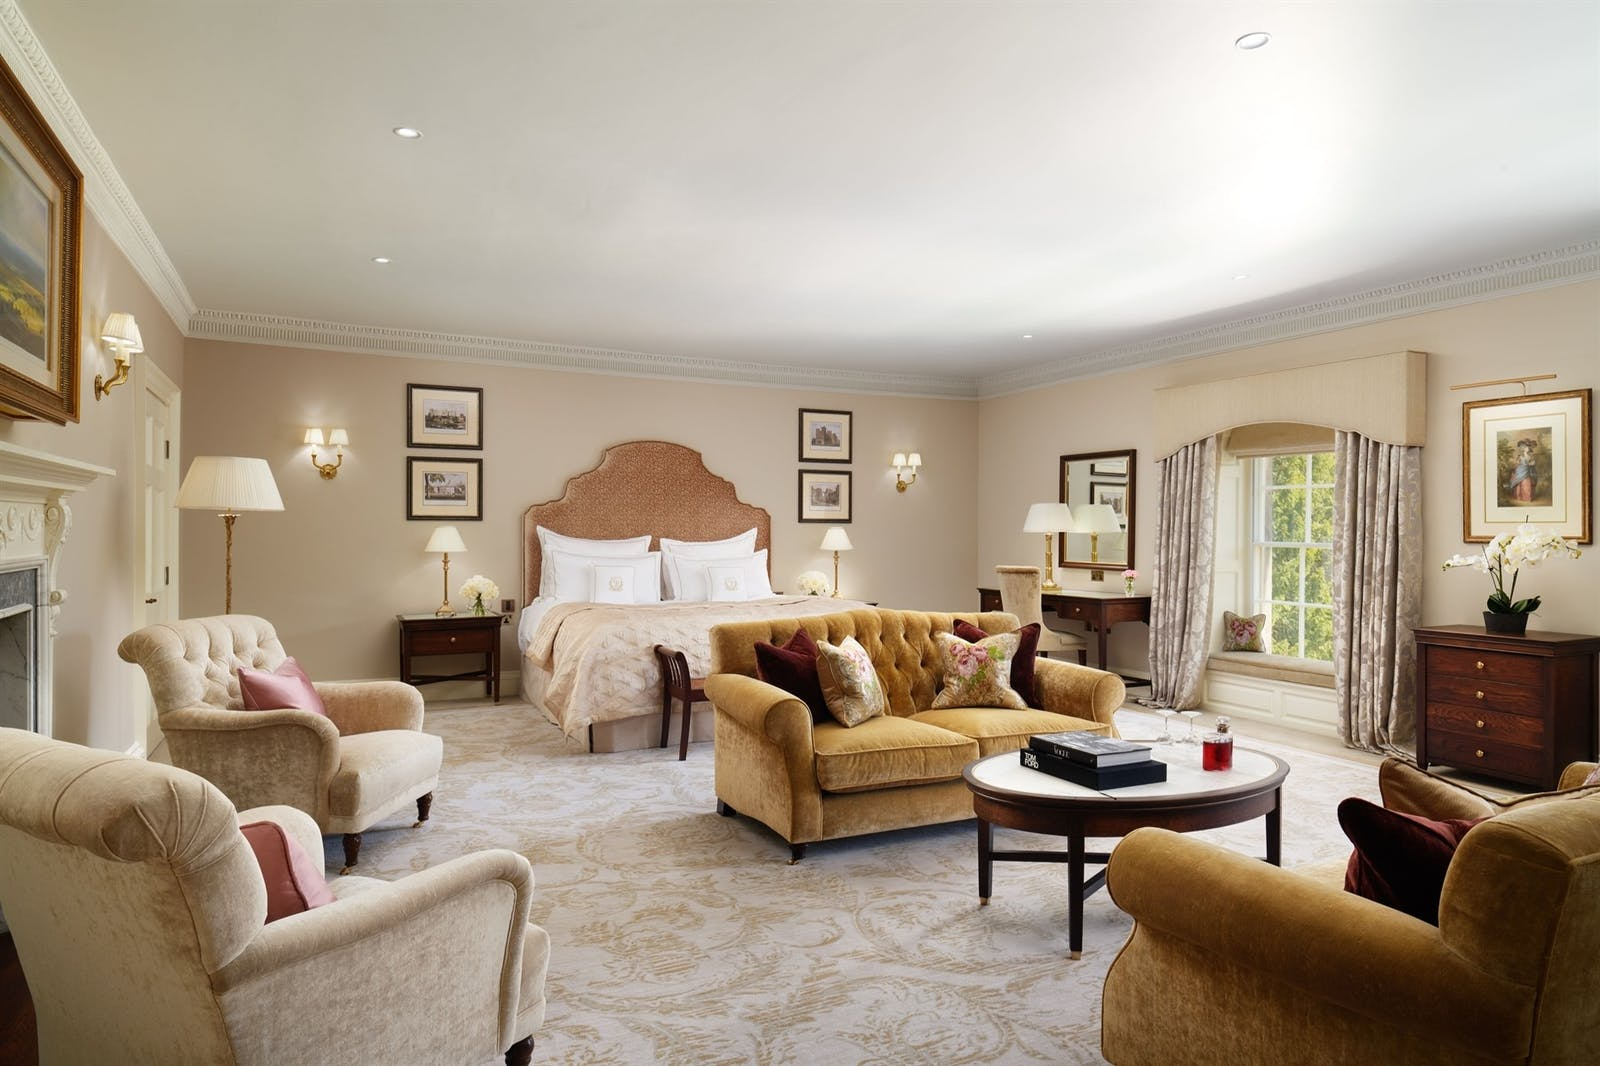 Grand Suite at Grantley Hall Ripon, Yorkshire, England